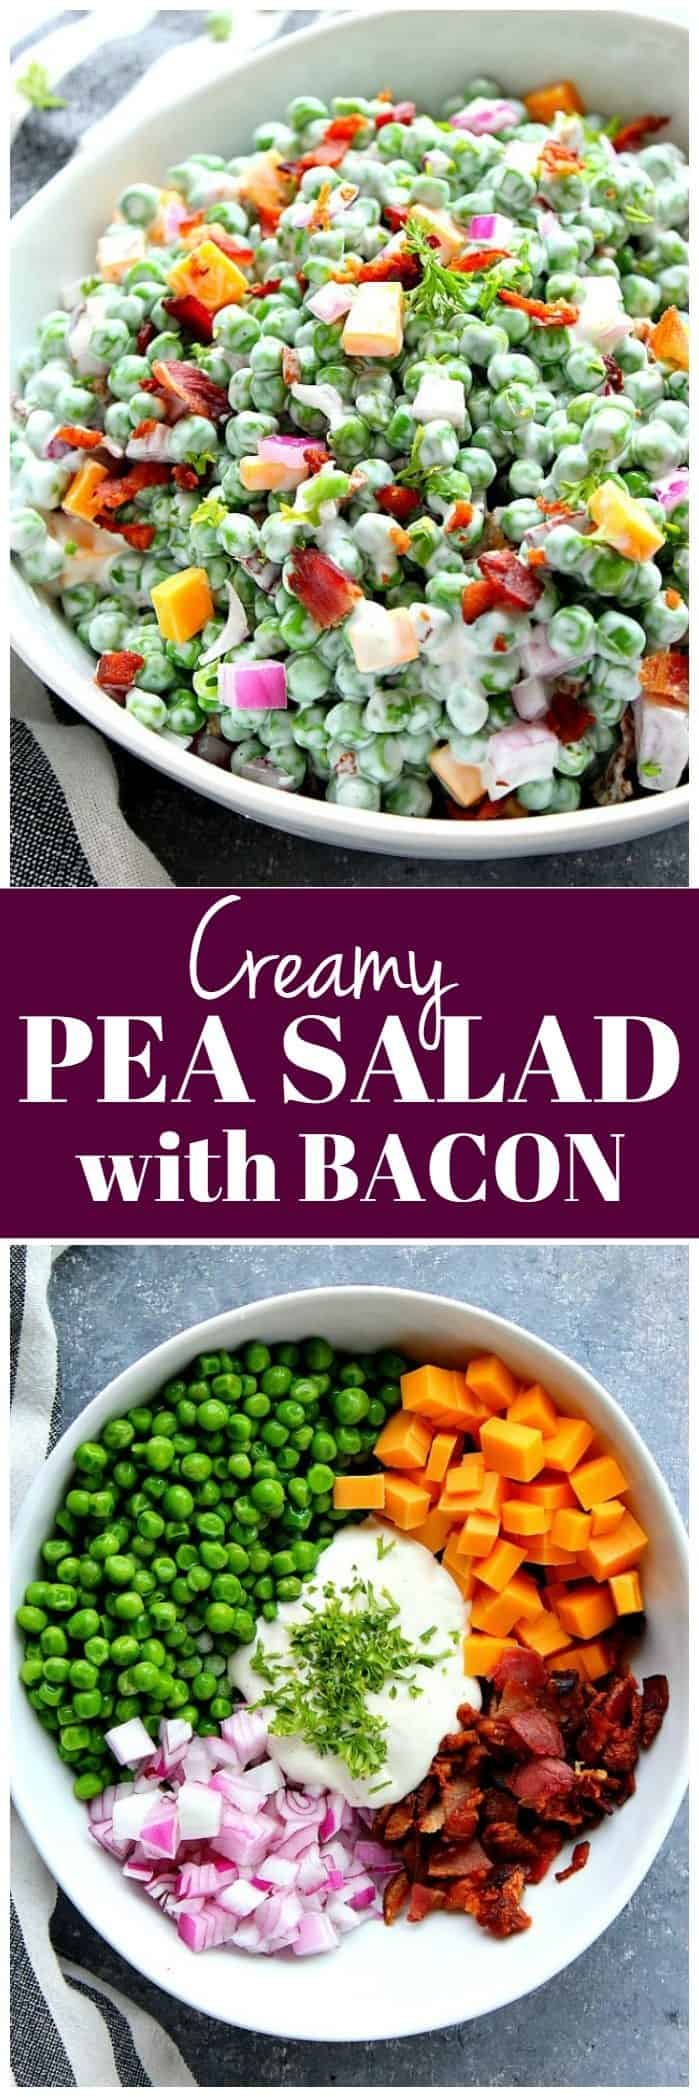 creamy green peas salad recipe 1 Creamy Pea Salad with Bacon